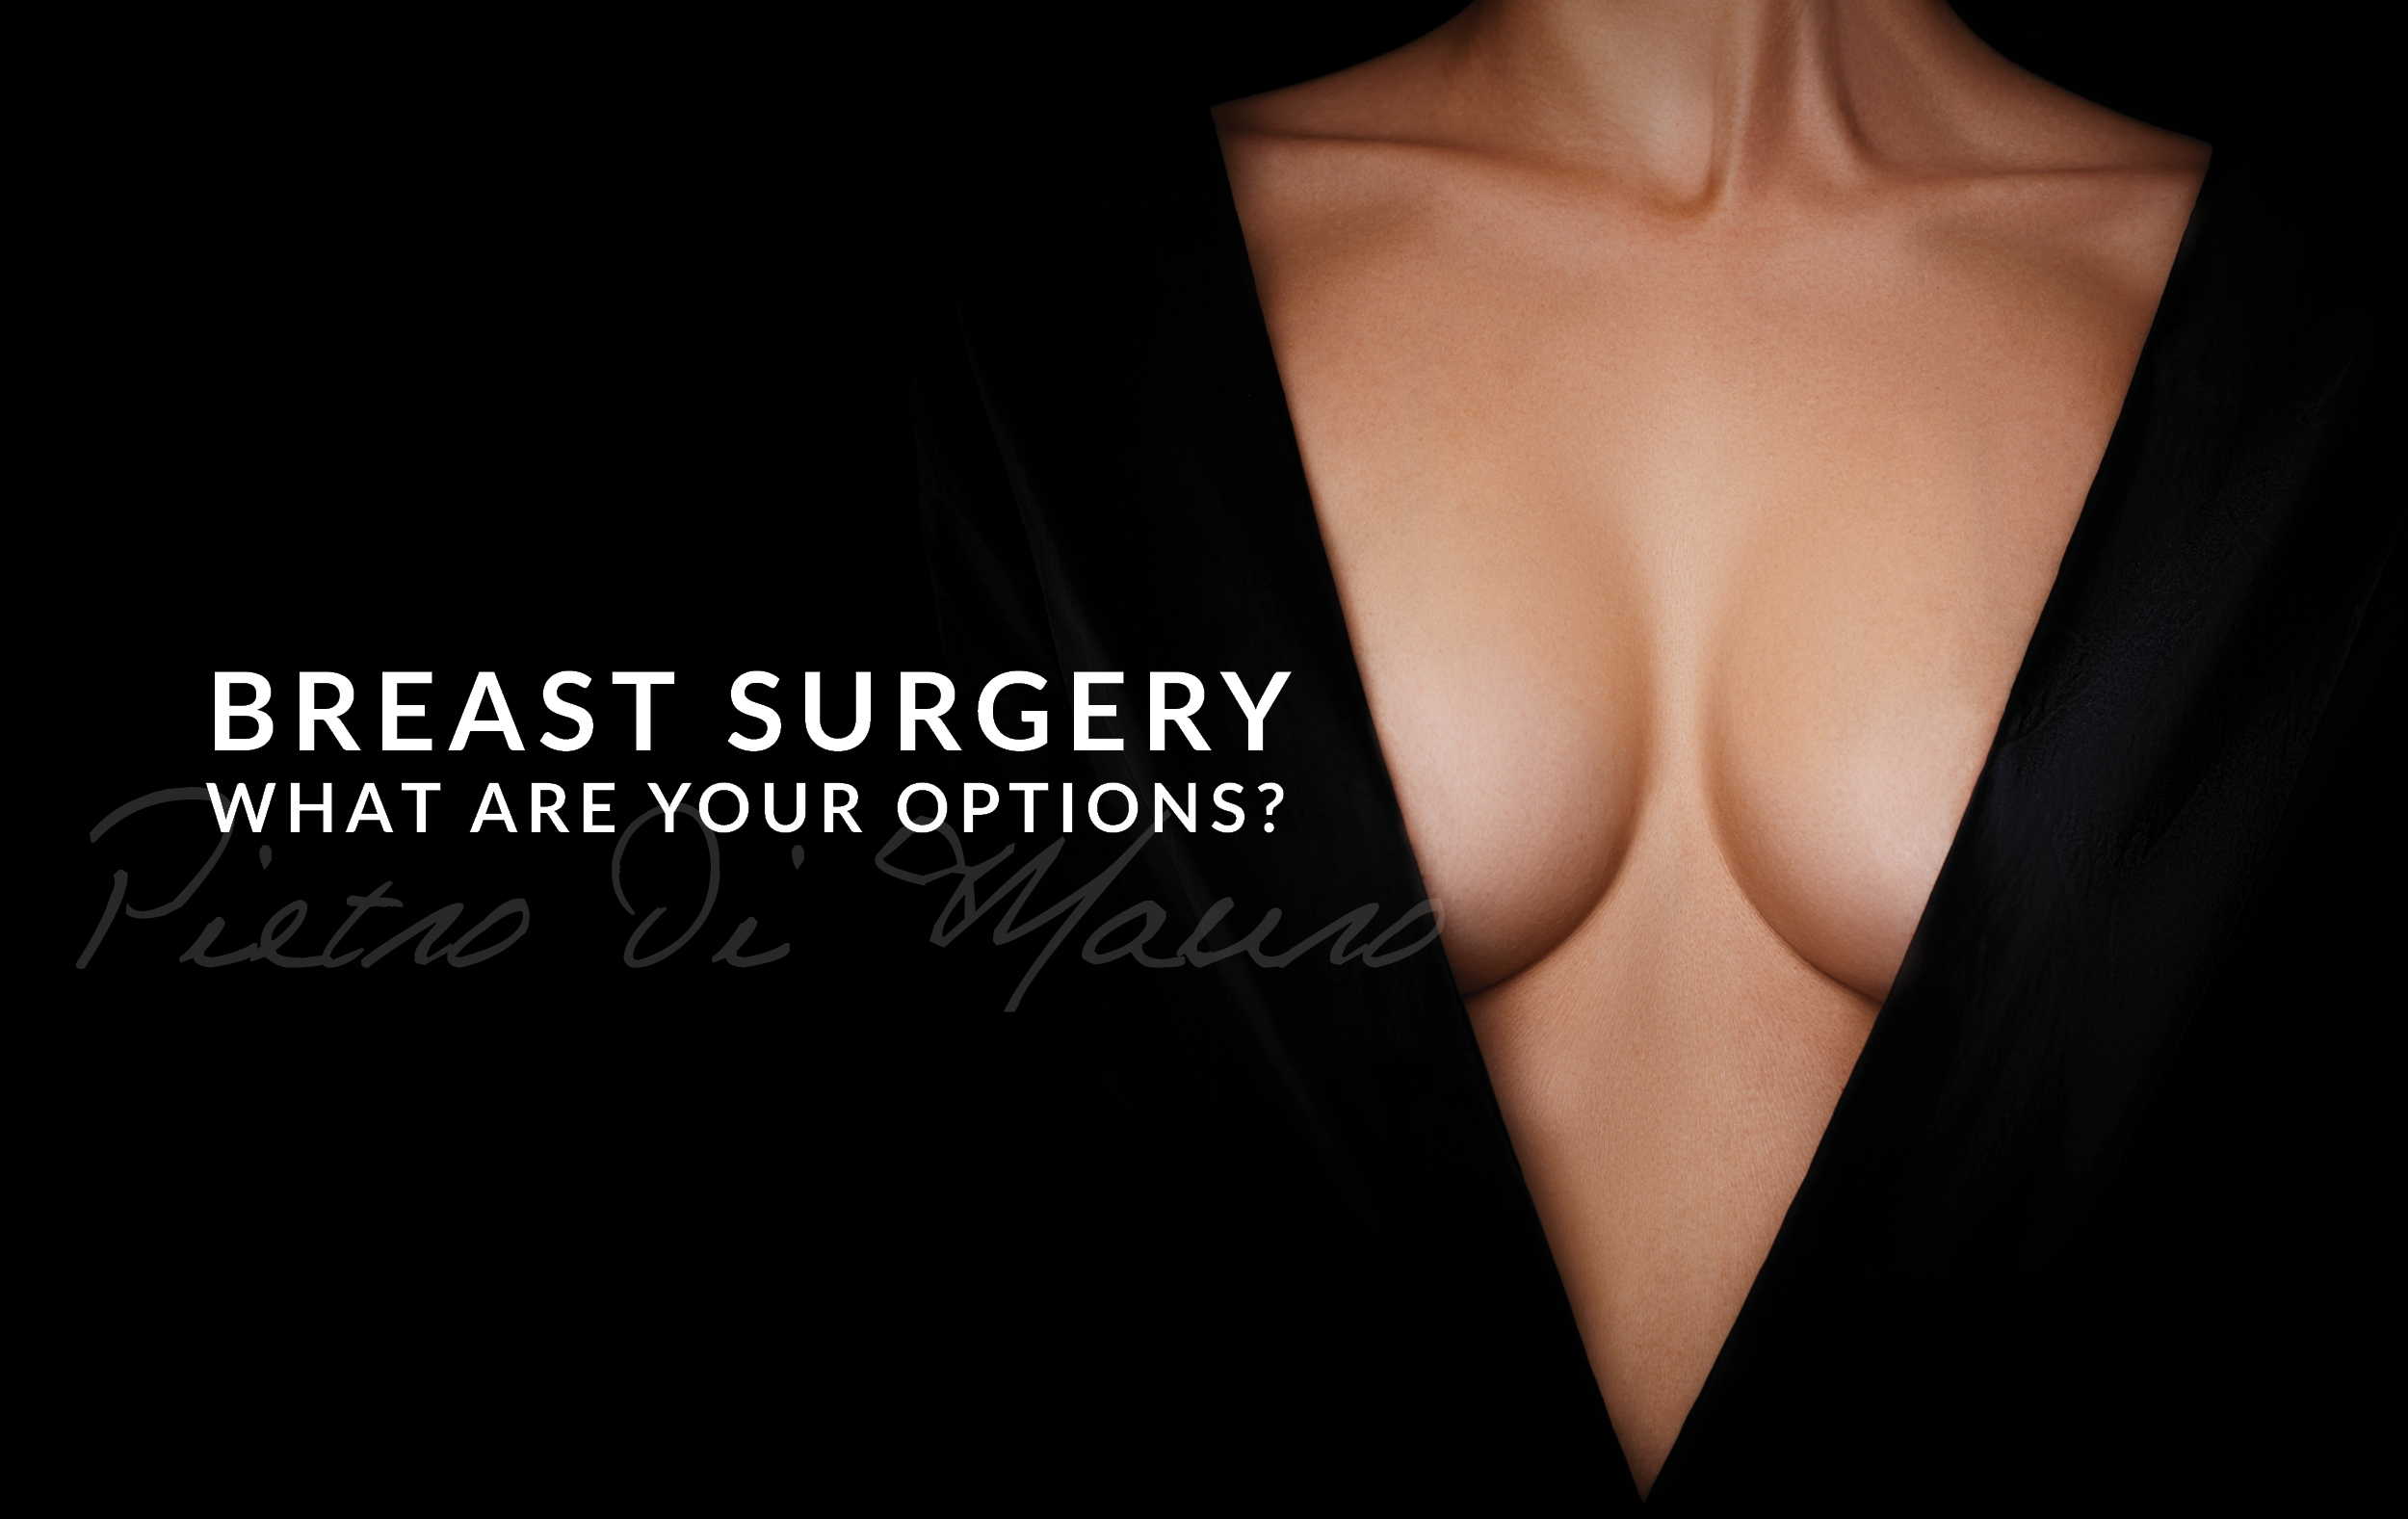 Breast surgery what are my options - Pietro Di Mauro